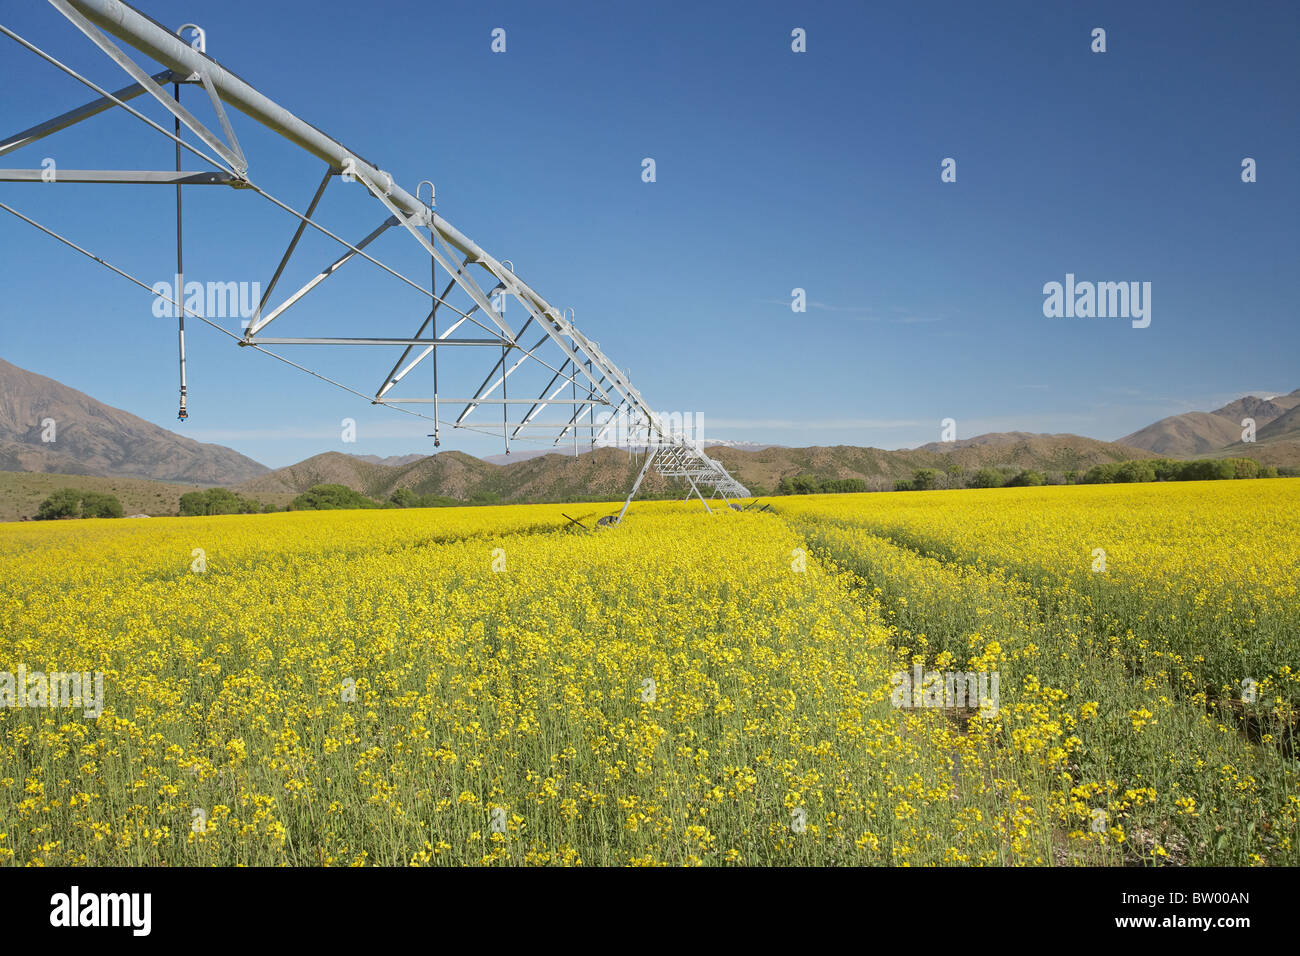 Centre pivot irrigation and canola / rapeseed field near Omarama, North Otago, South Island, New Zealand - Stock Image